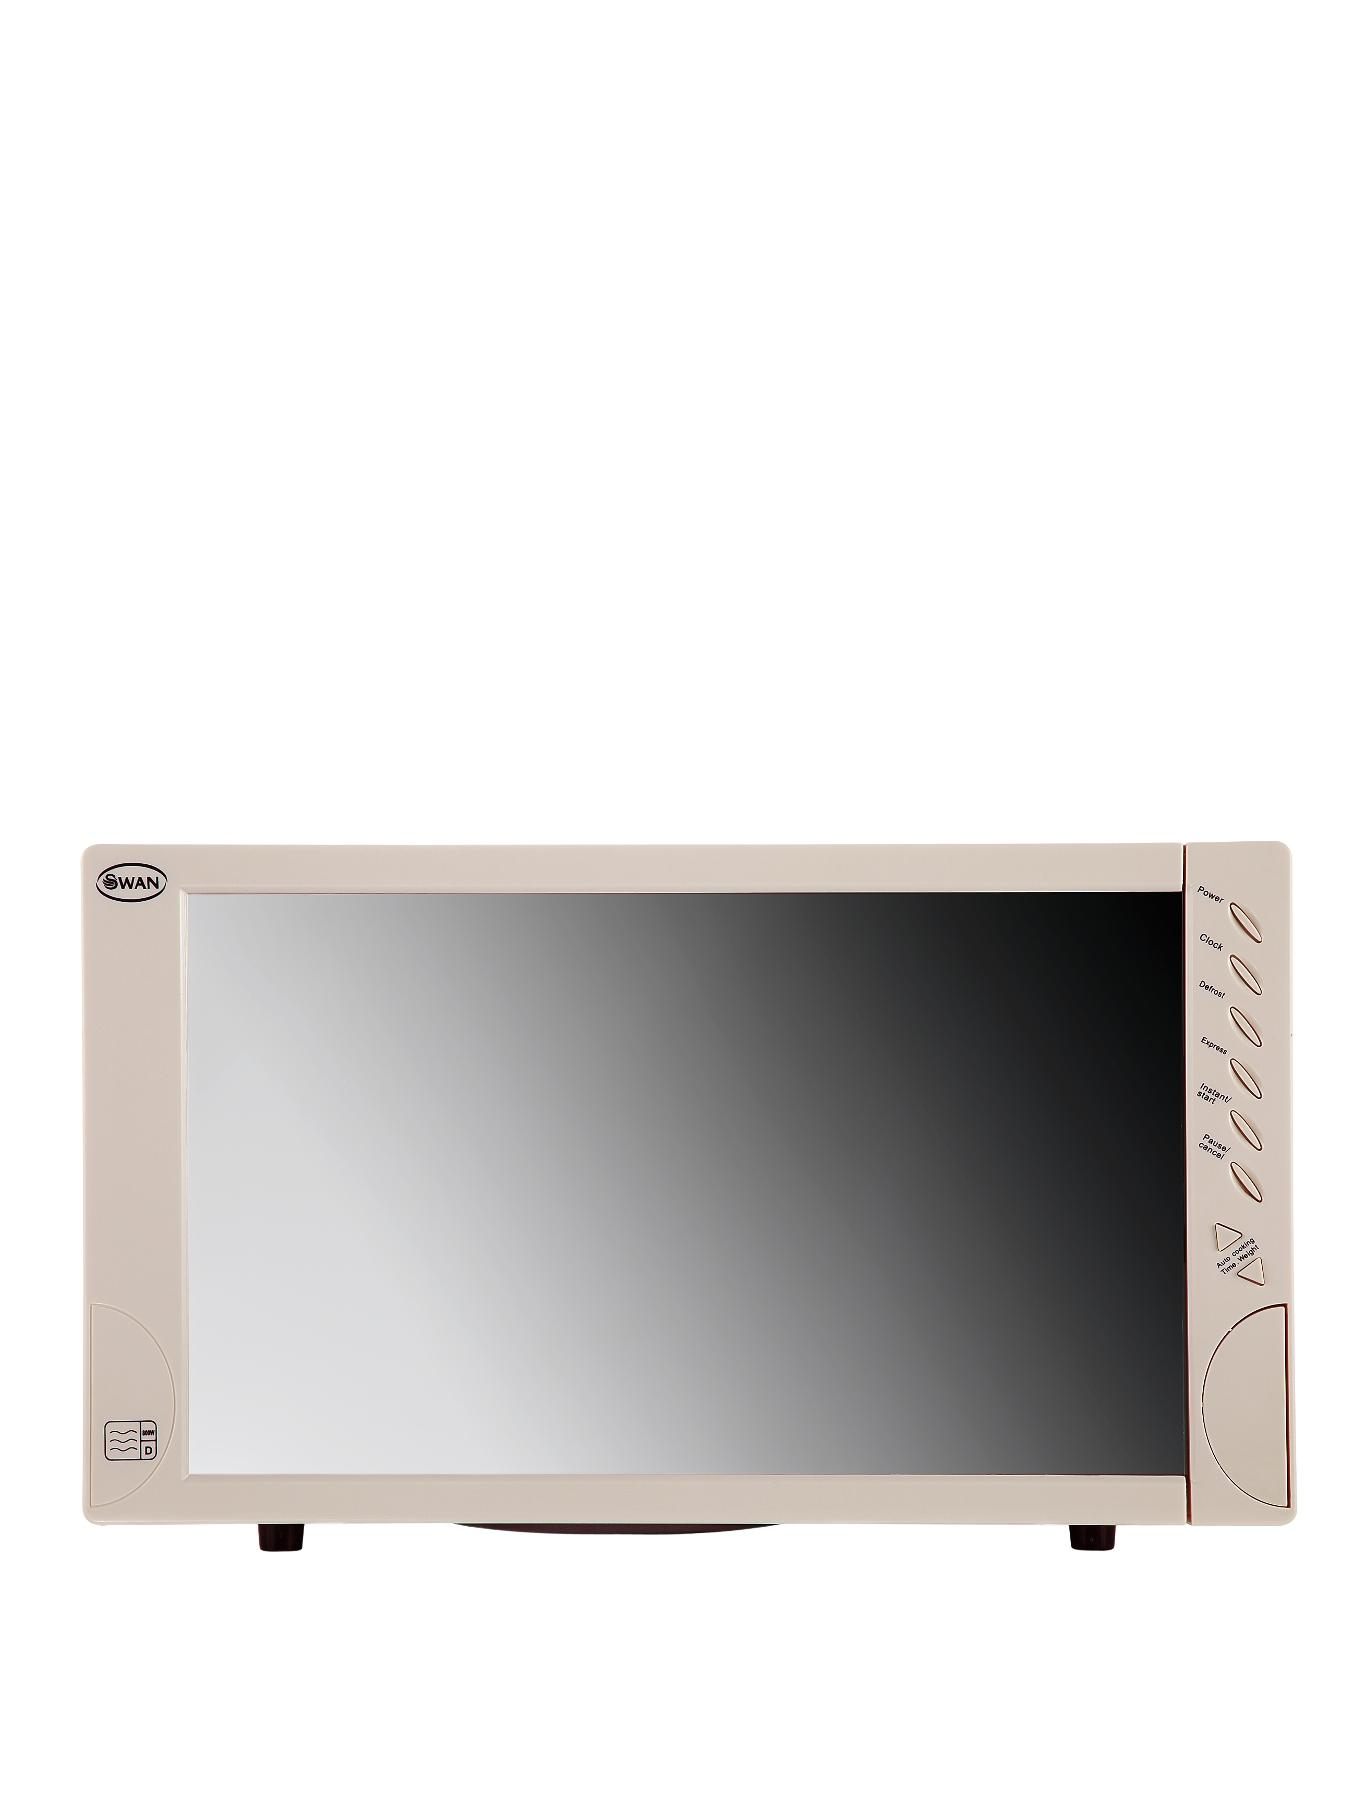 SM2060C 800-watt Mirror Door Microwave - Cream